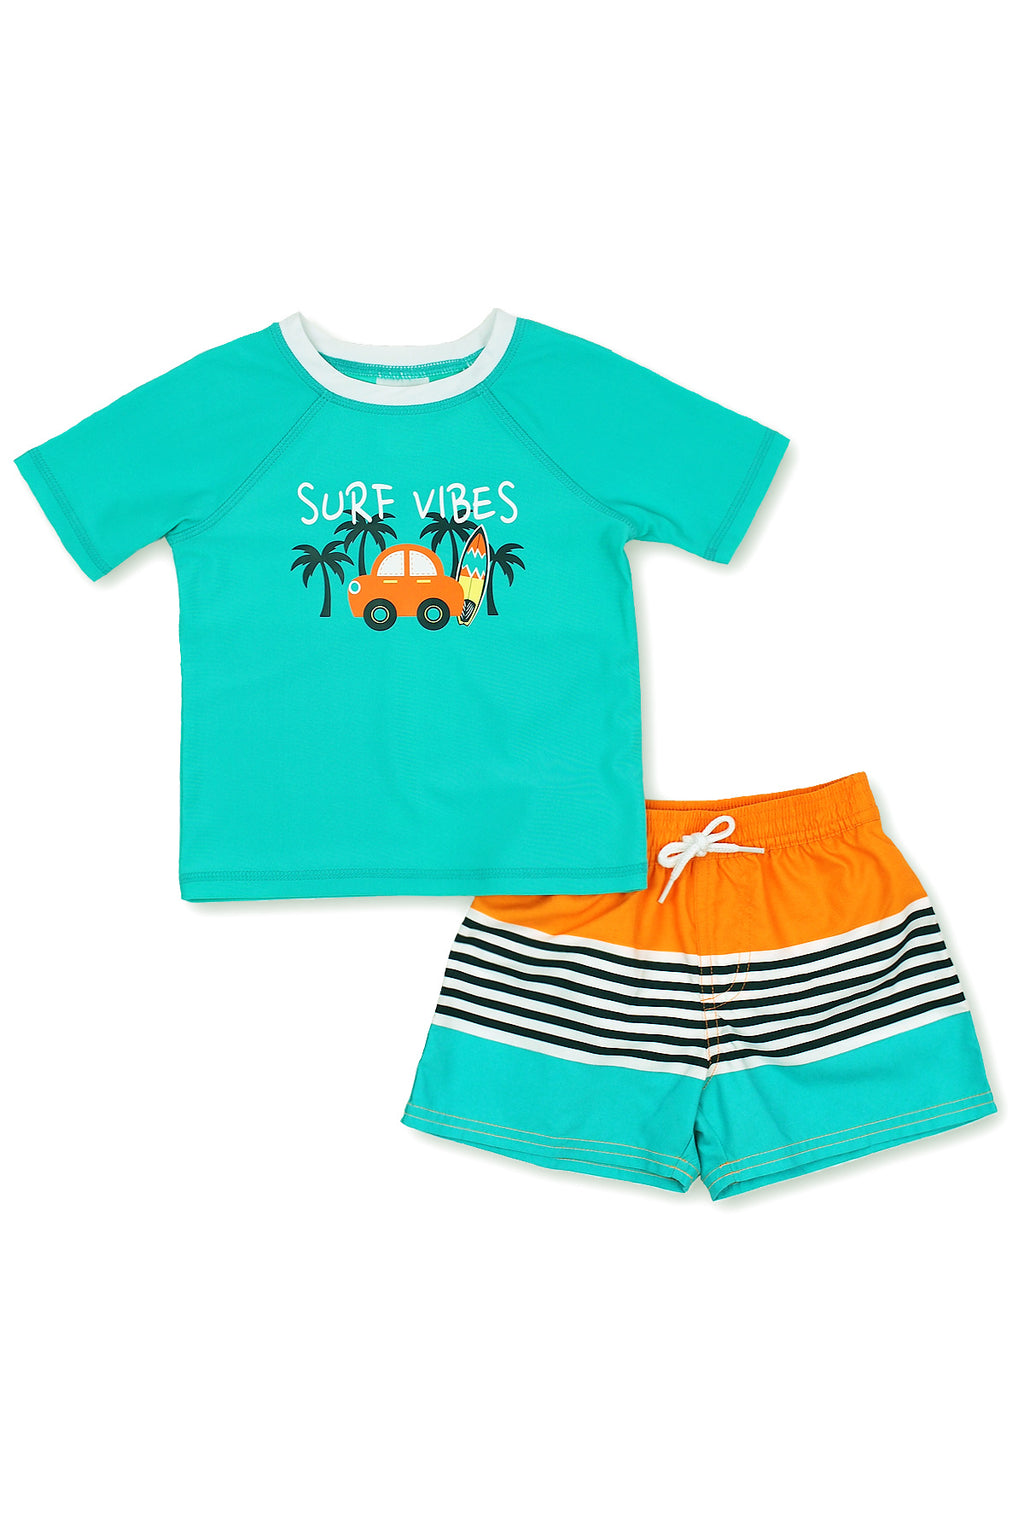 Boys Surf Vibes Color Block Short Sleeve Rash Guard Set, Turq